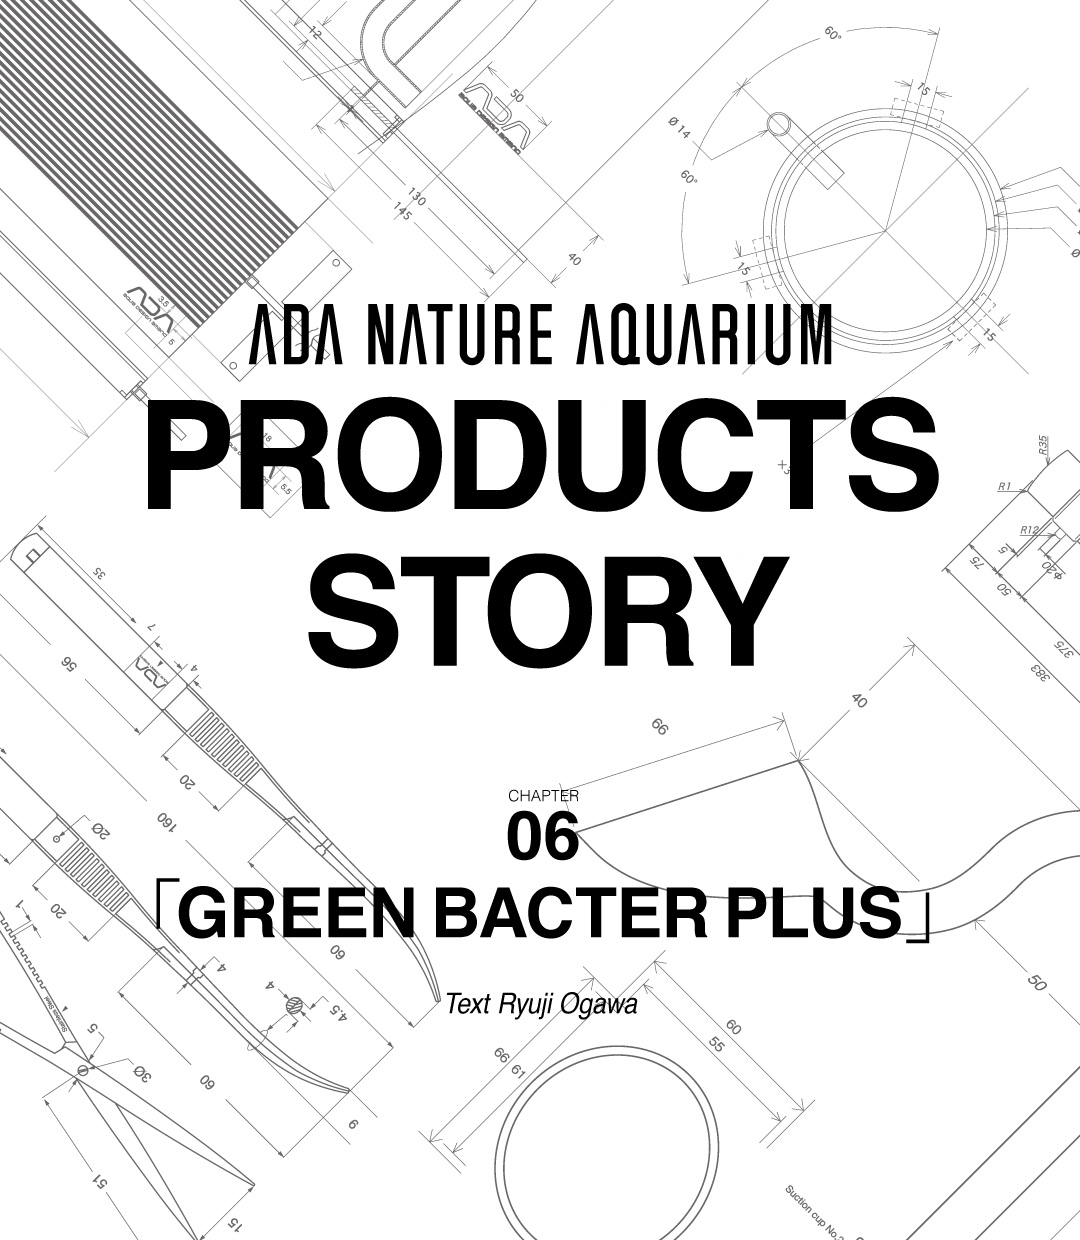 NA PRODUCTS STORY #06 GREEN BACTER PLUS